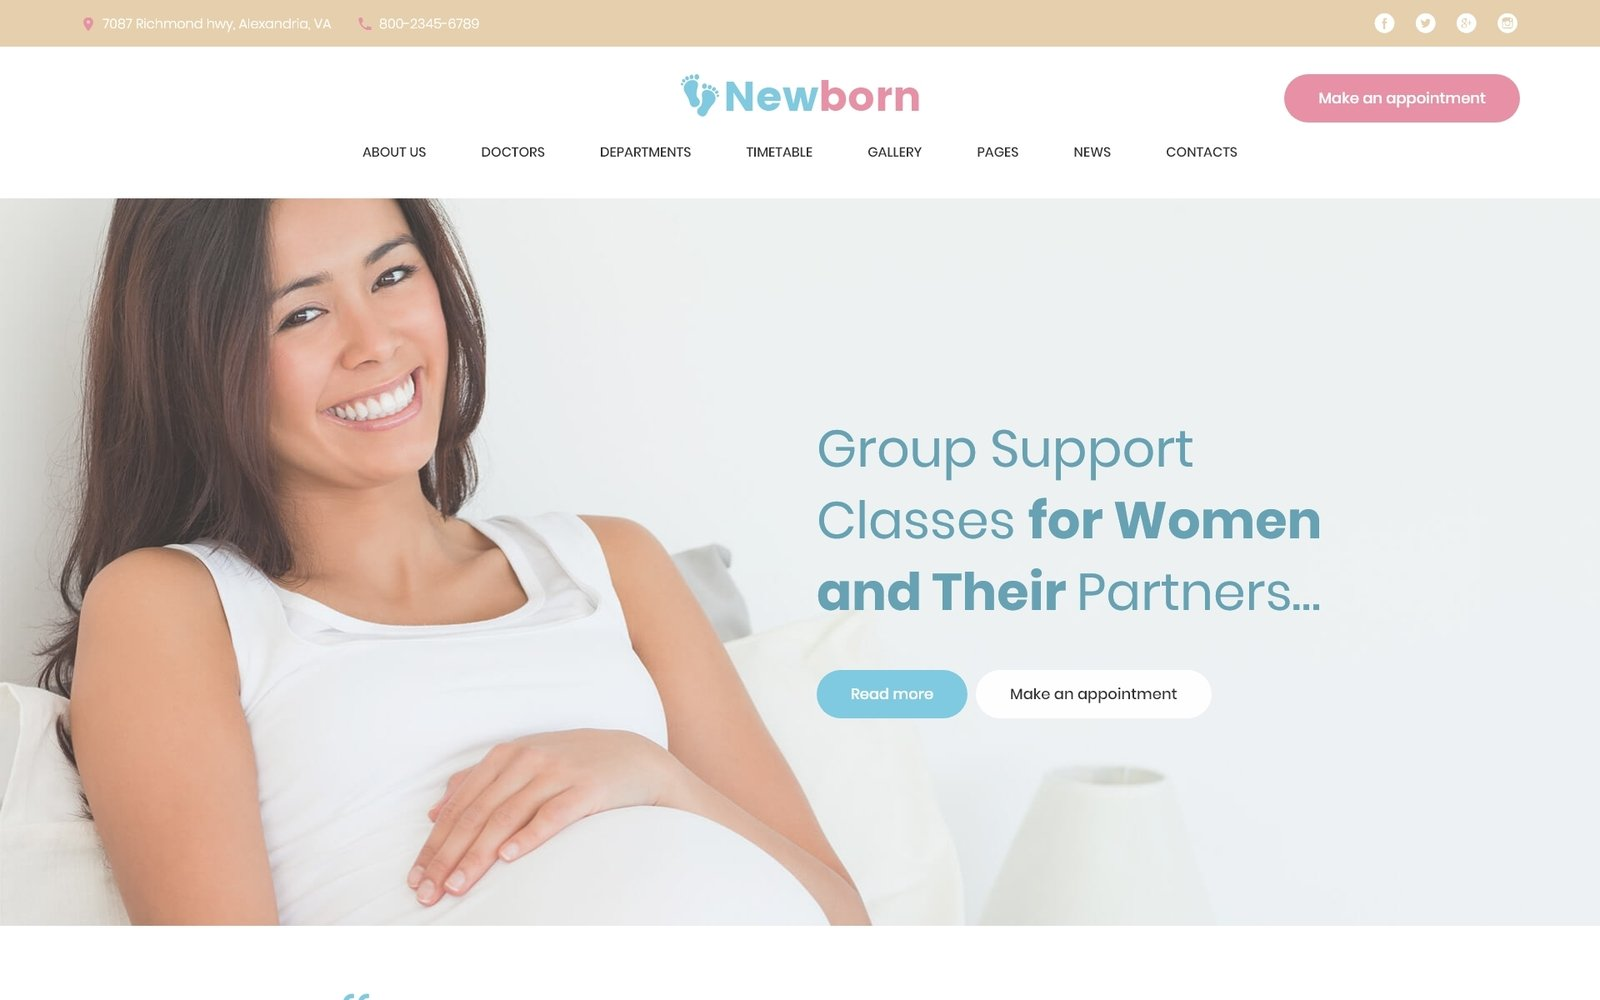 Newborn - Pregnancy Support Center Tema WordPress №61241